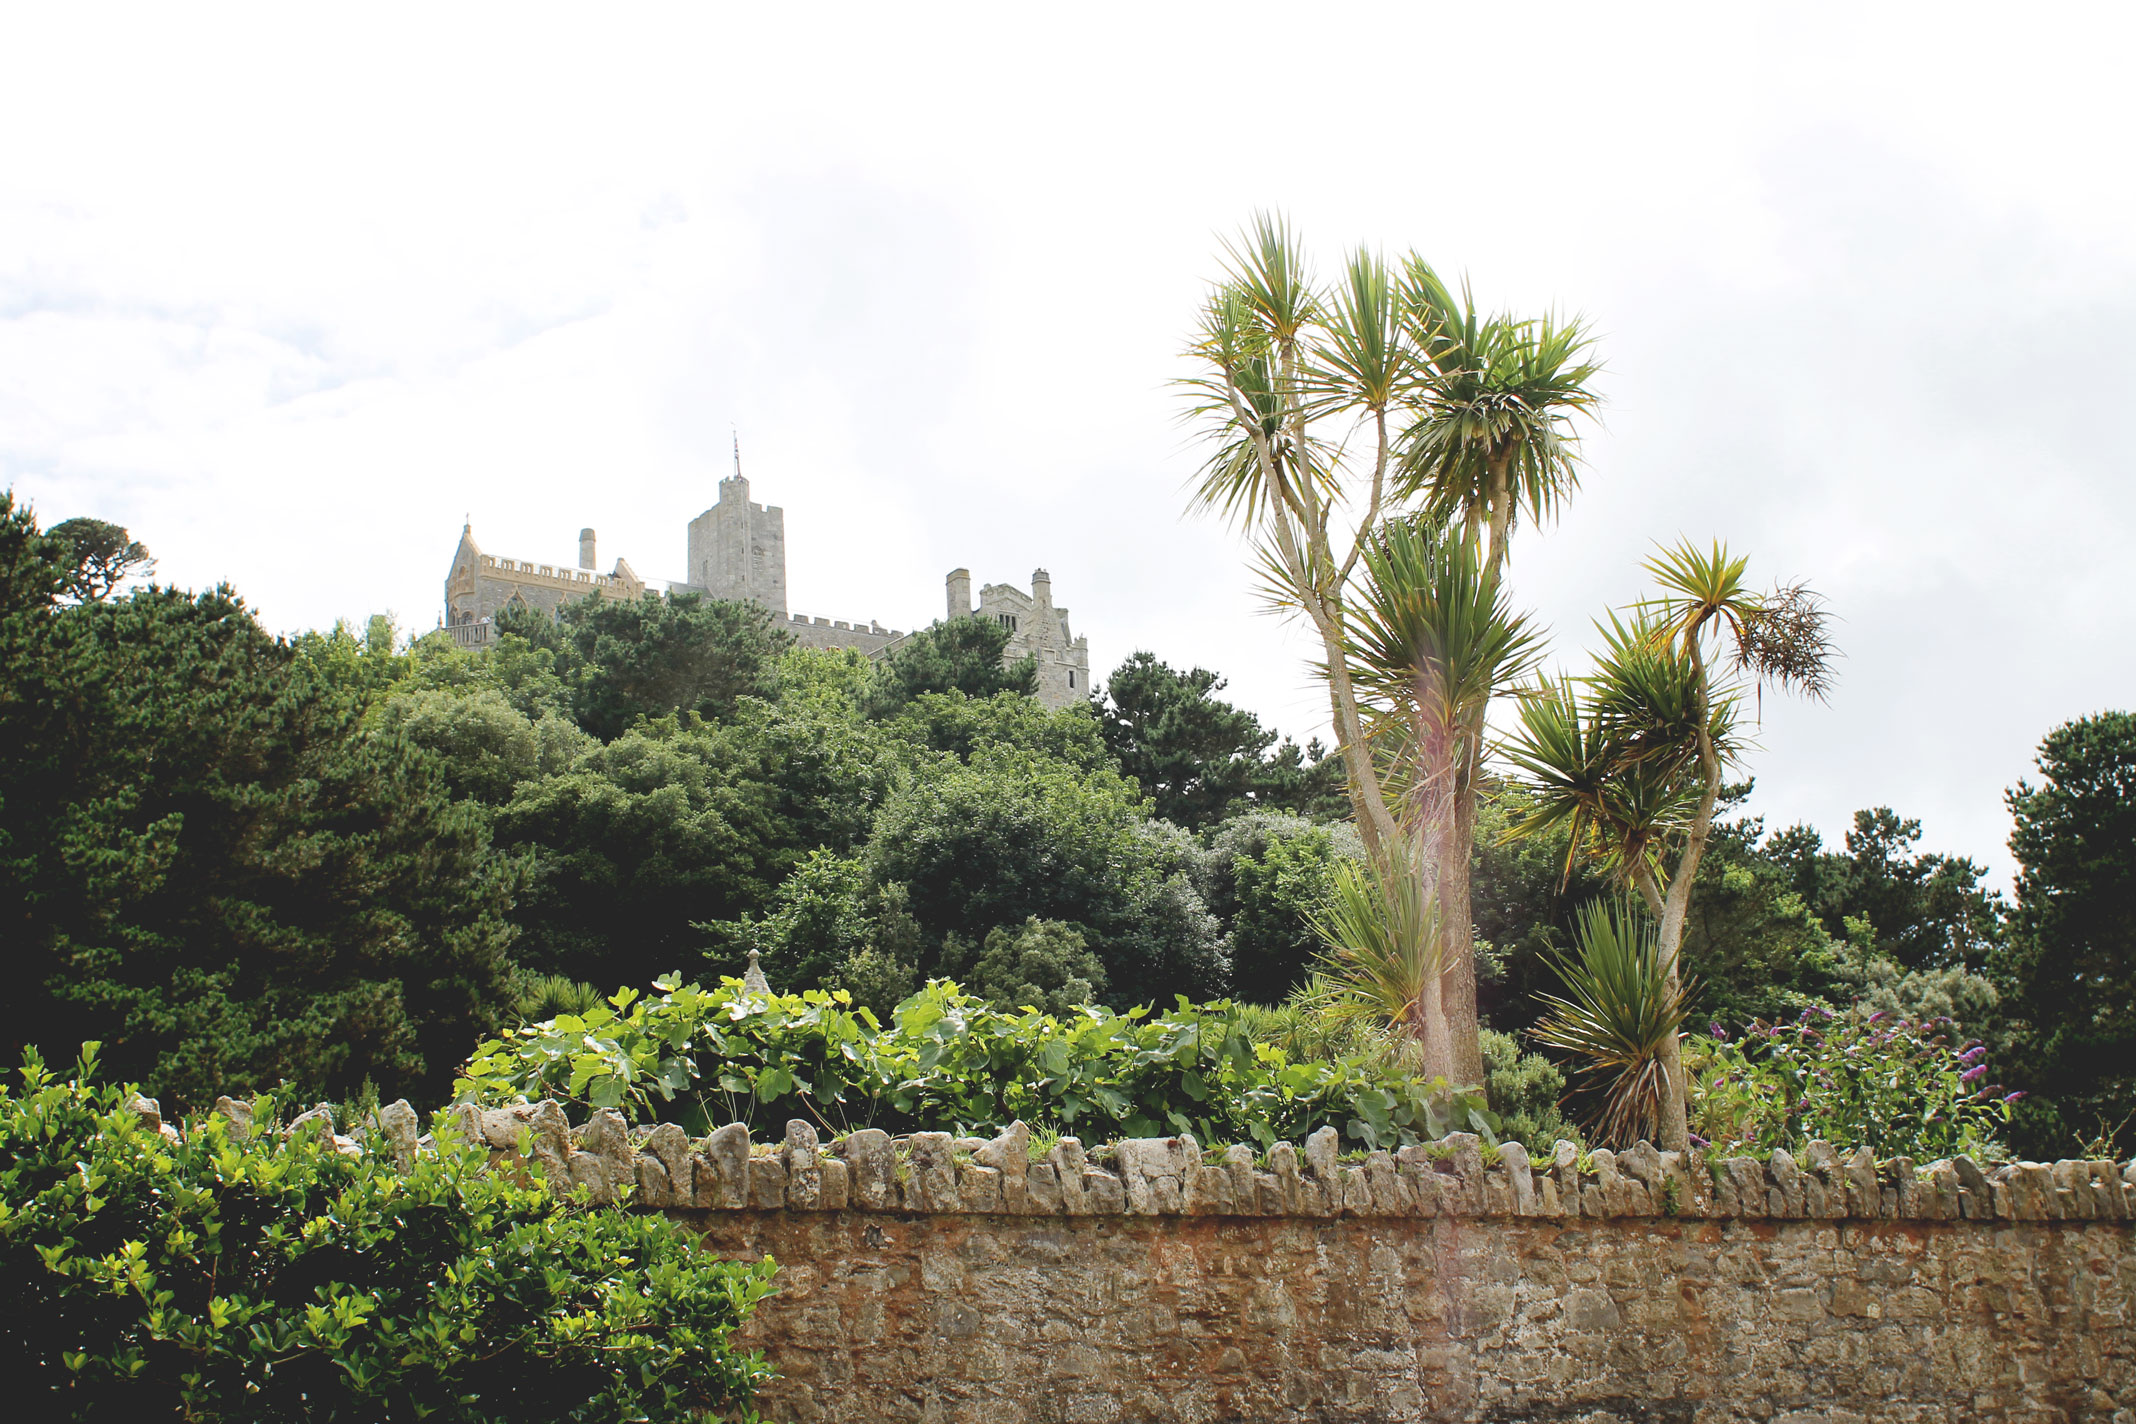 London to Cornwall Holidays - St Michael's Mount - Travel UK - Styleat30 Blog - 13